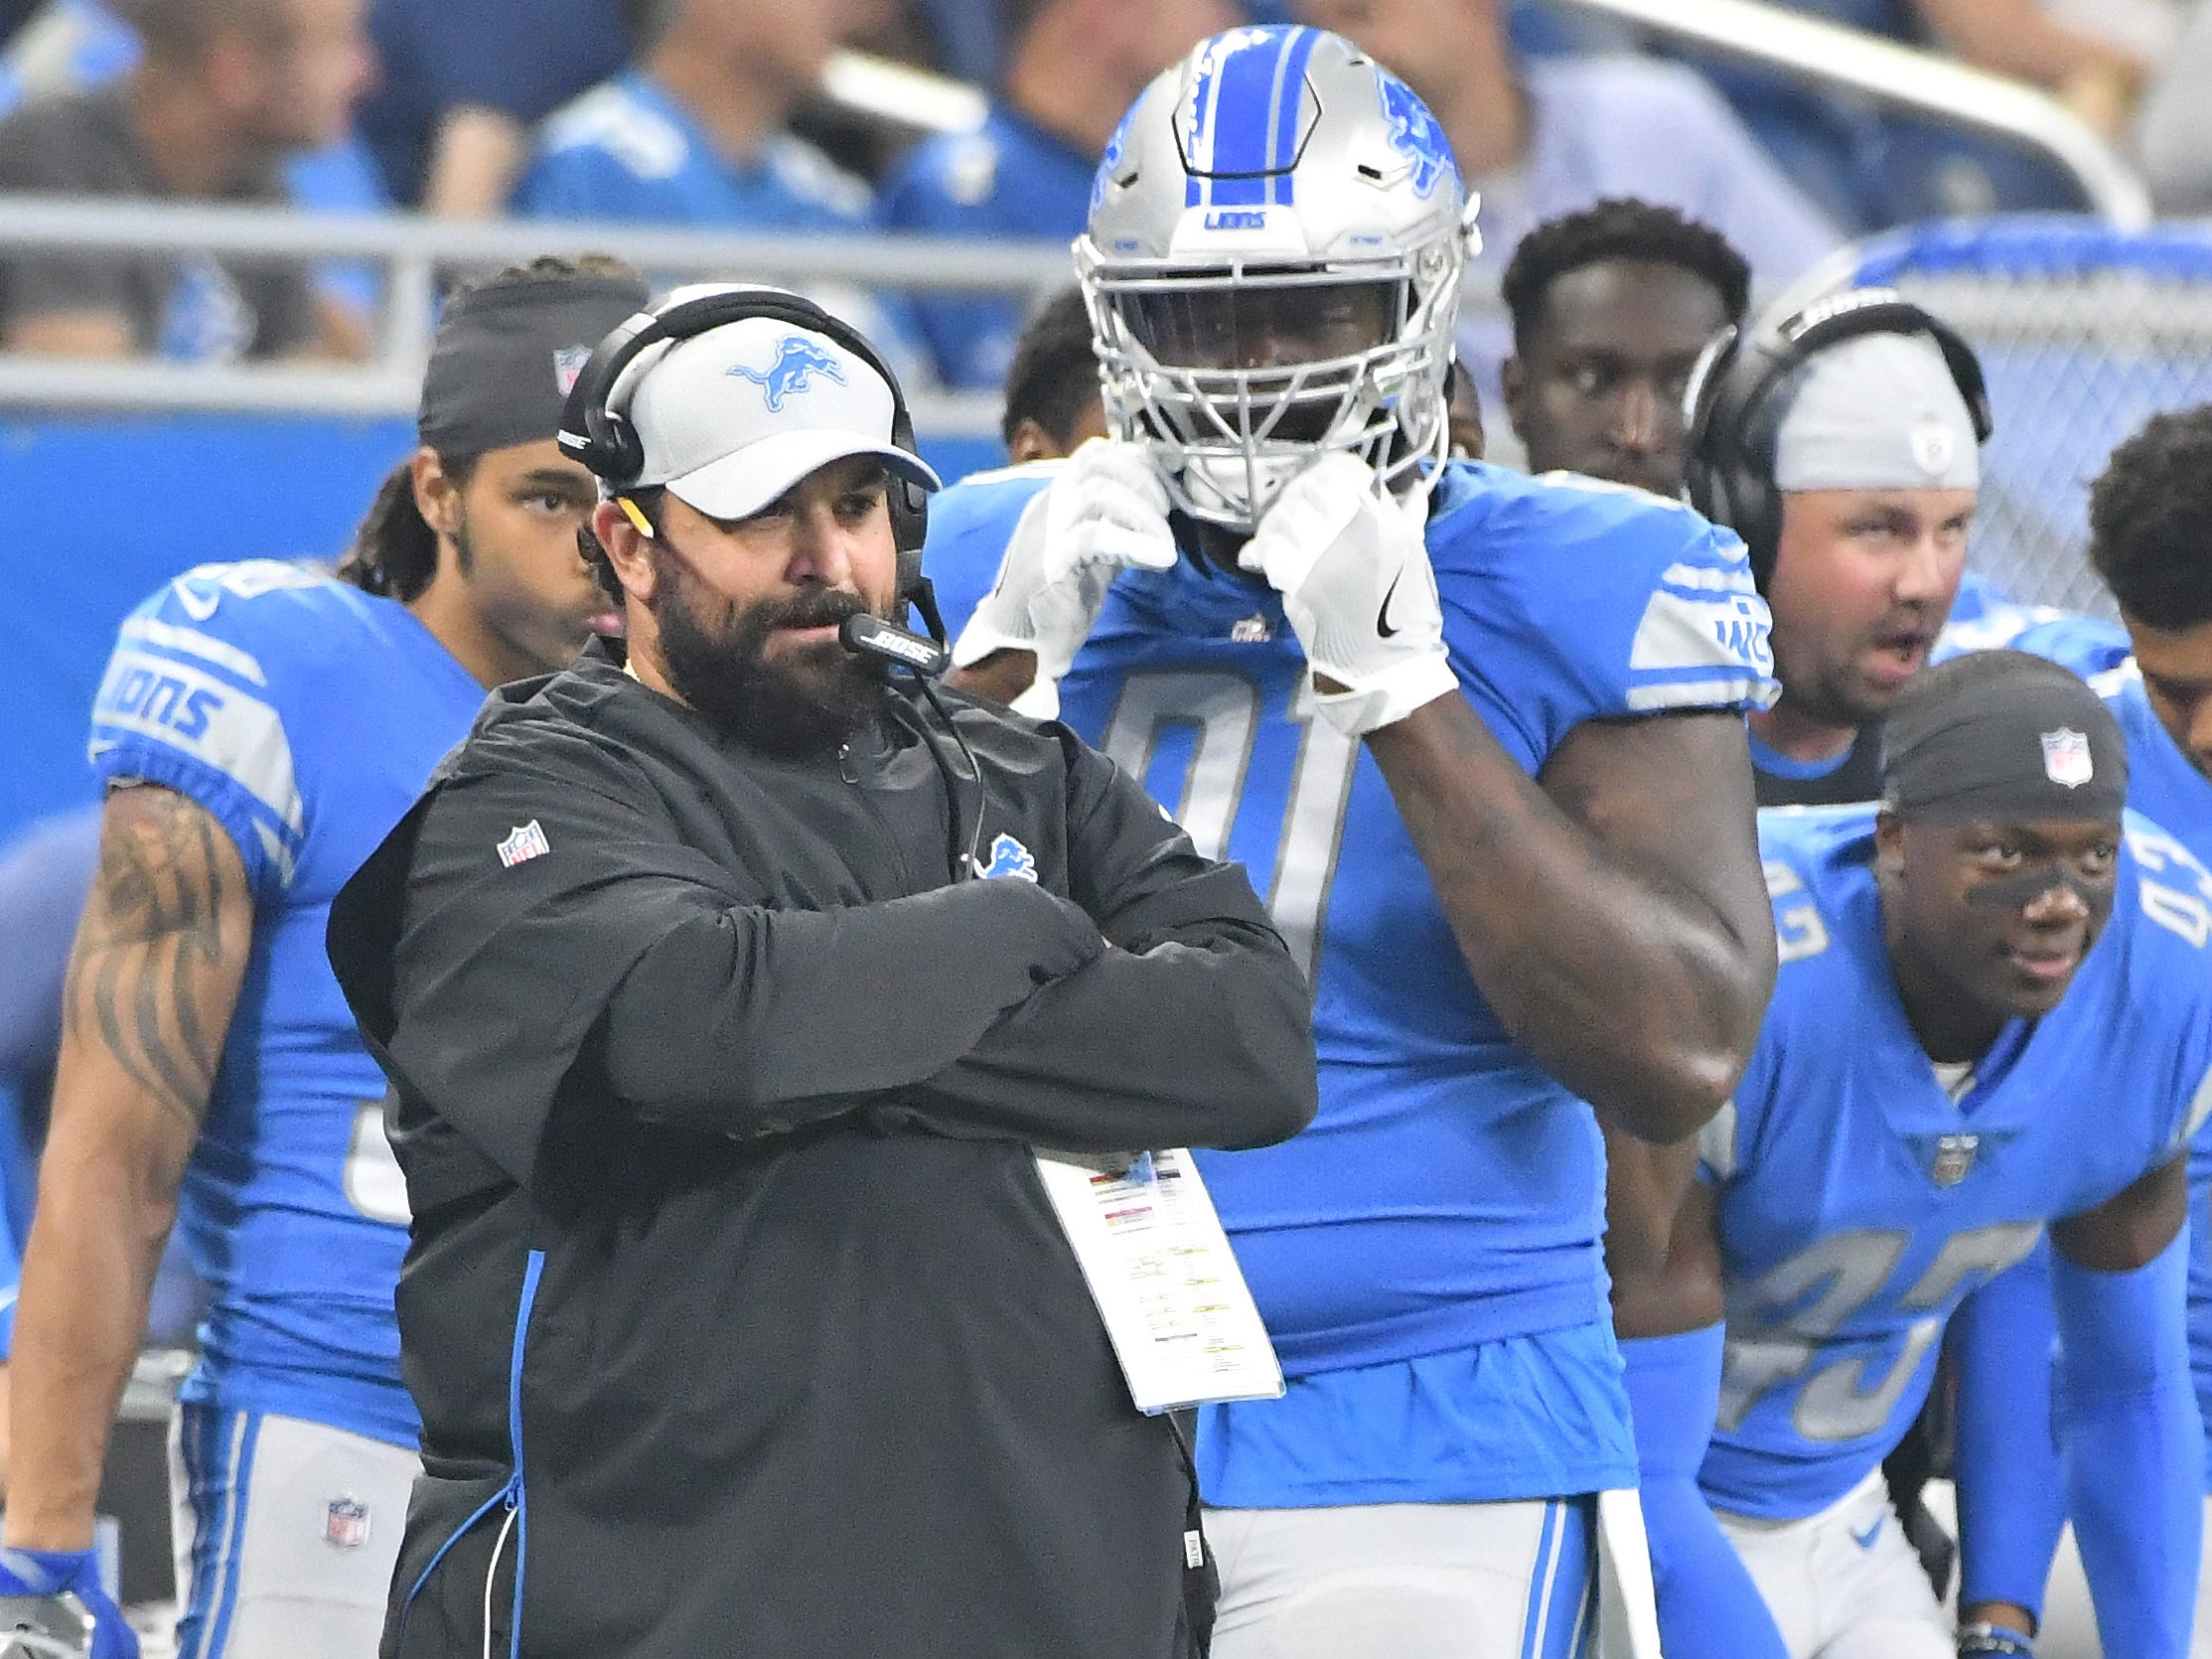 Lions head coach Matt Patricia watches his team from the sideline in the first quarter.